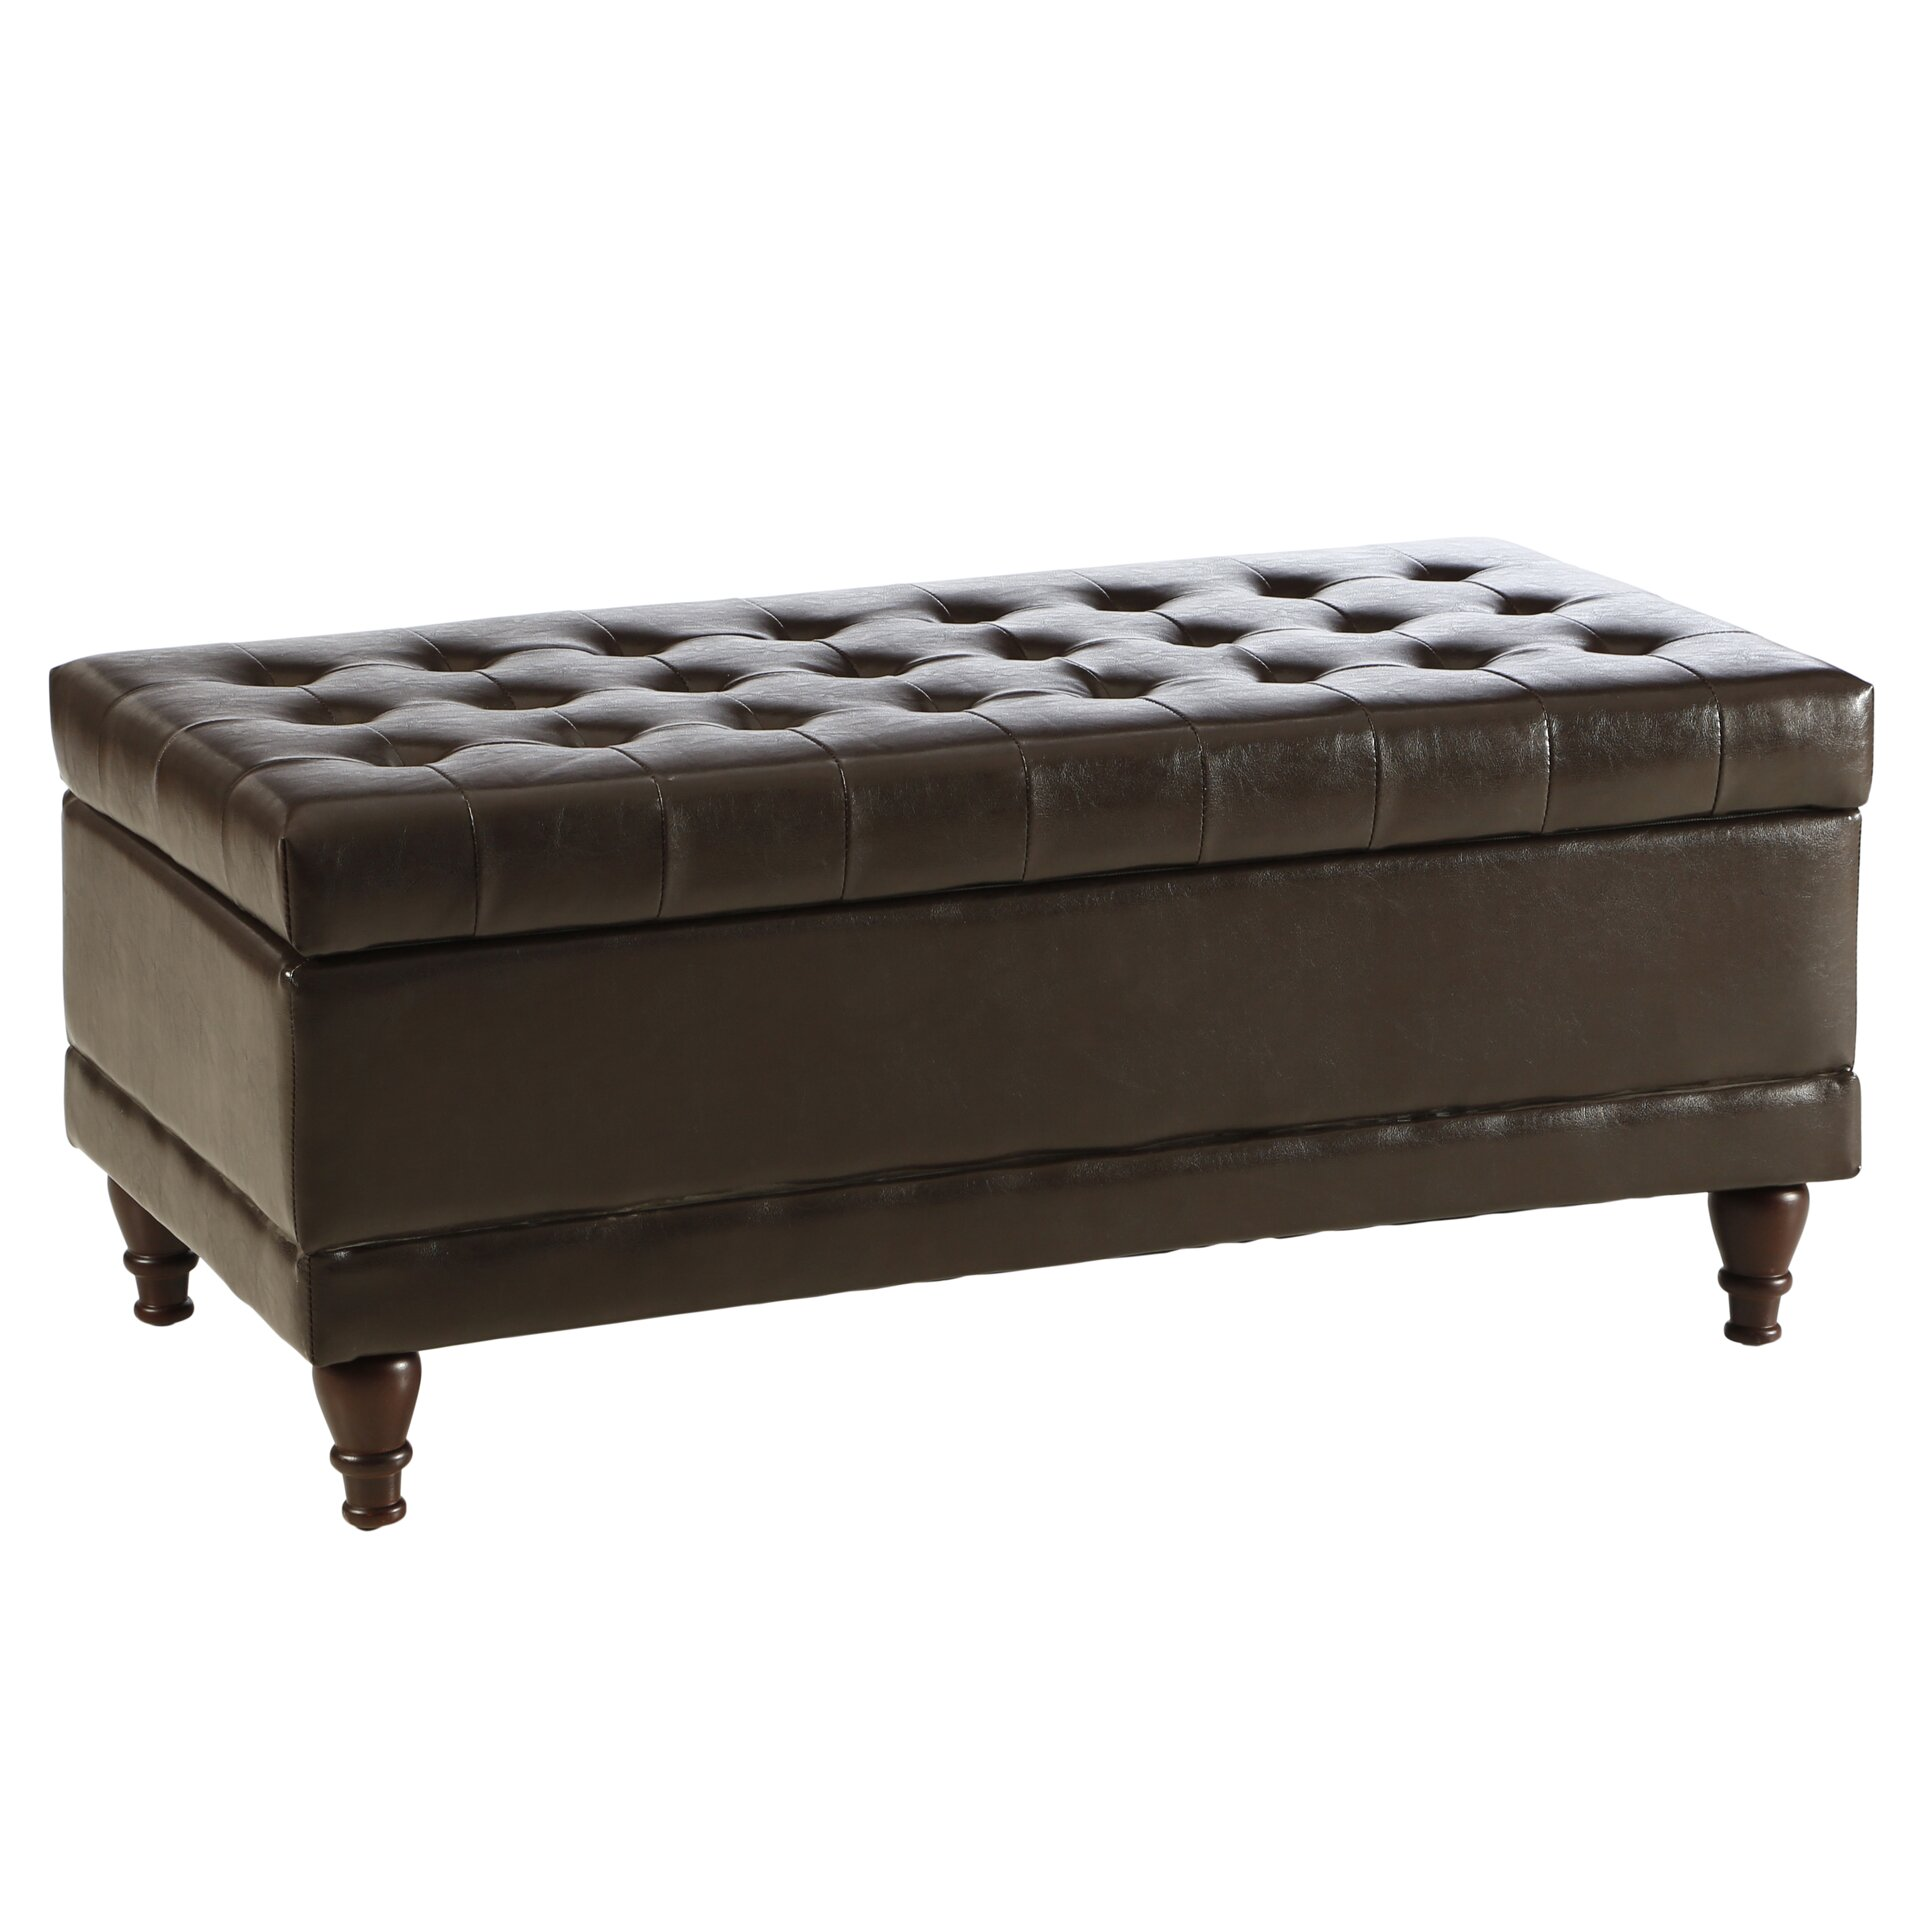 Three Posts Polycarp Storage Ottoman Reviews: Three Posts Amhearst Tufted Storage Ottoman & Reviews